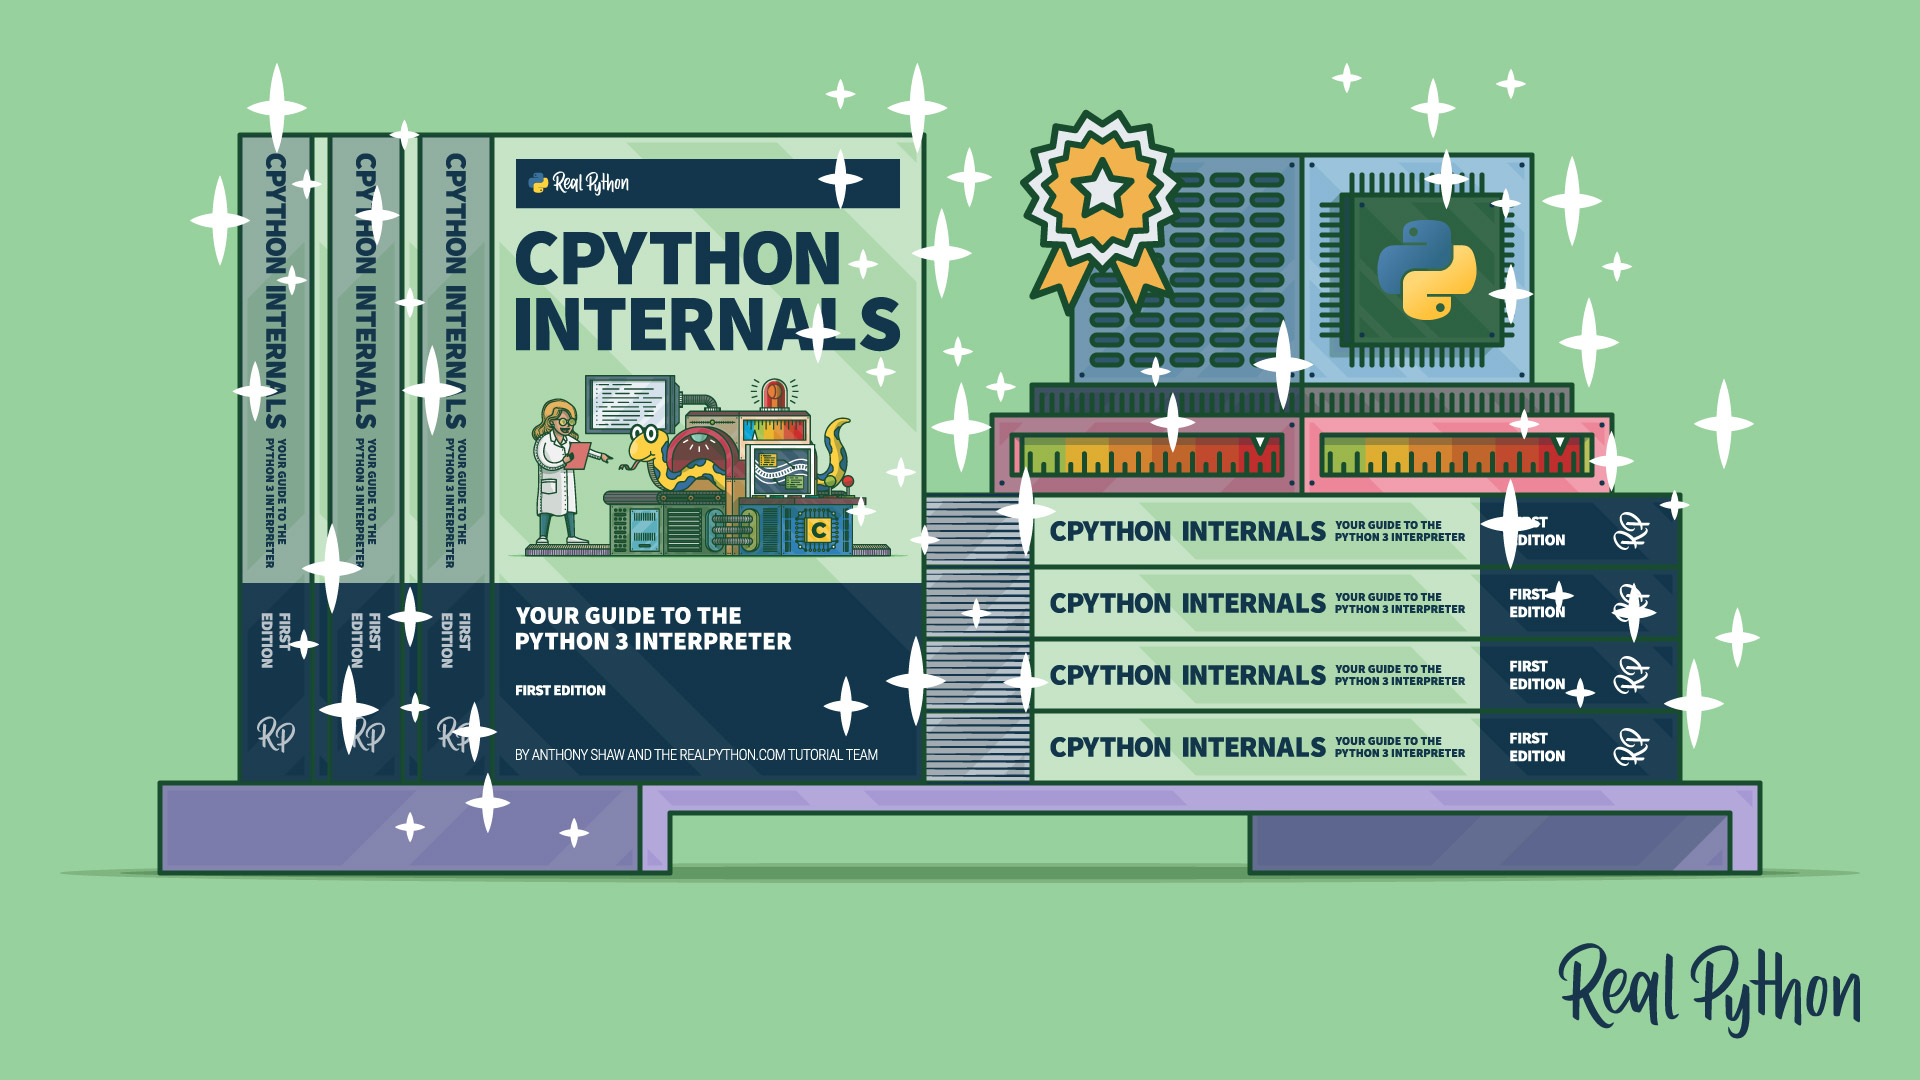 CPython Internals: Paperback Now Available!